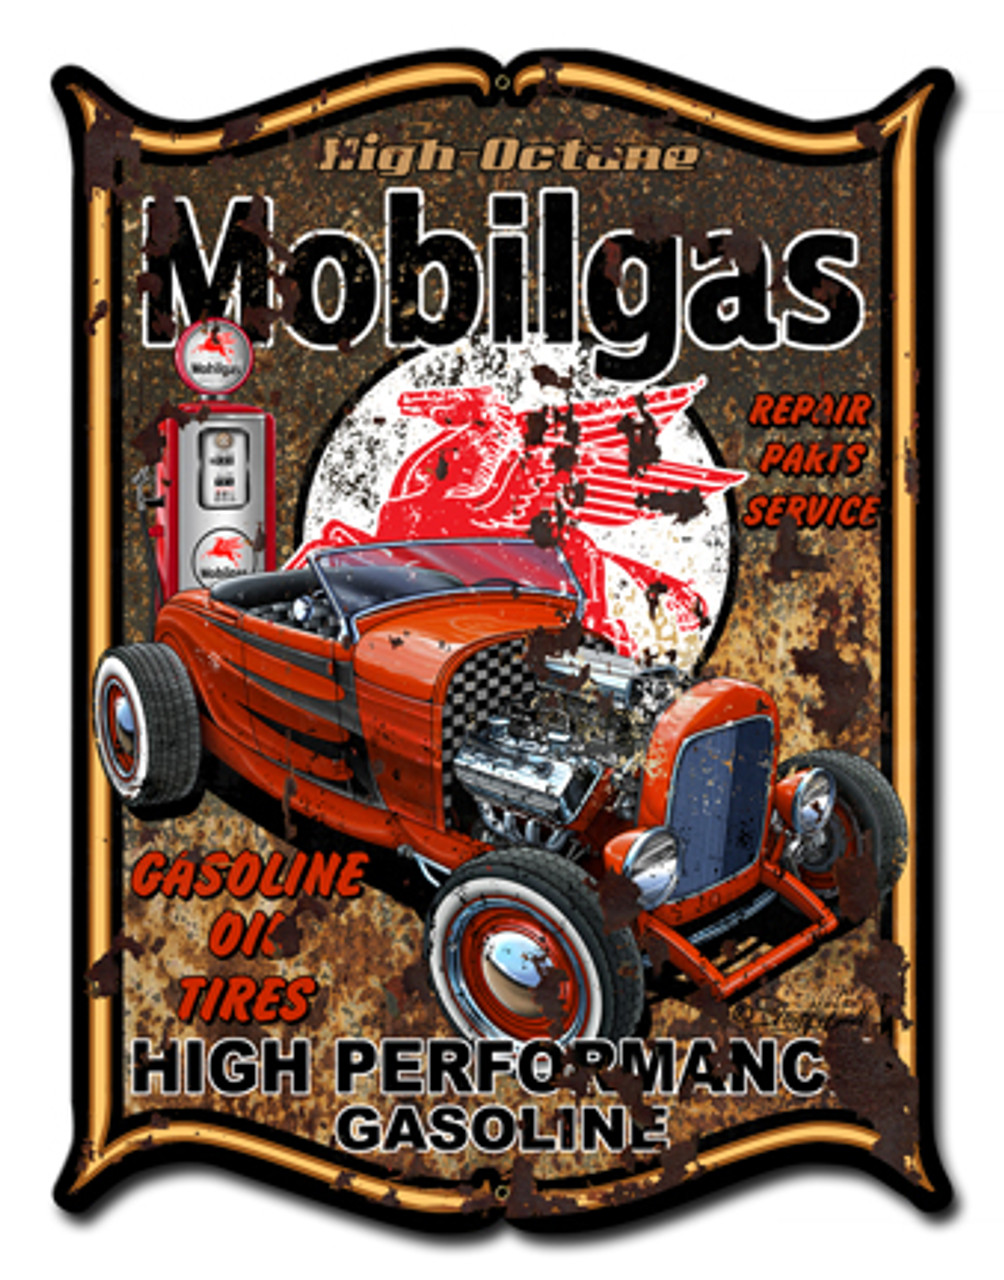 Mobilegas Metal Sign 14 x 19 Inches